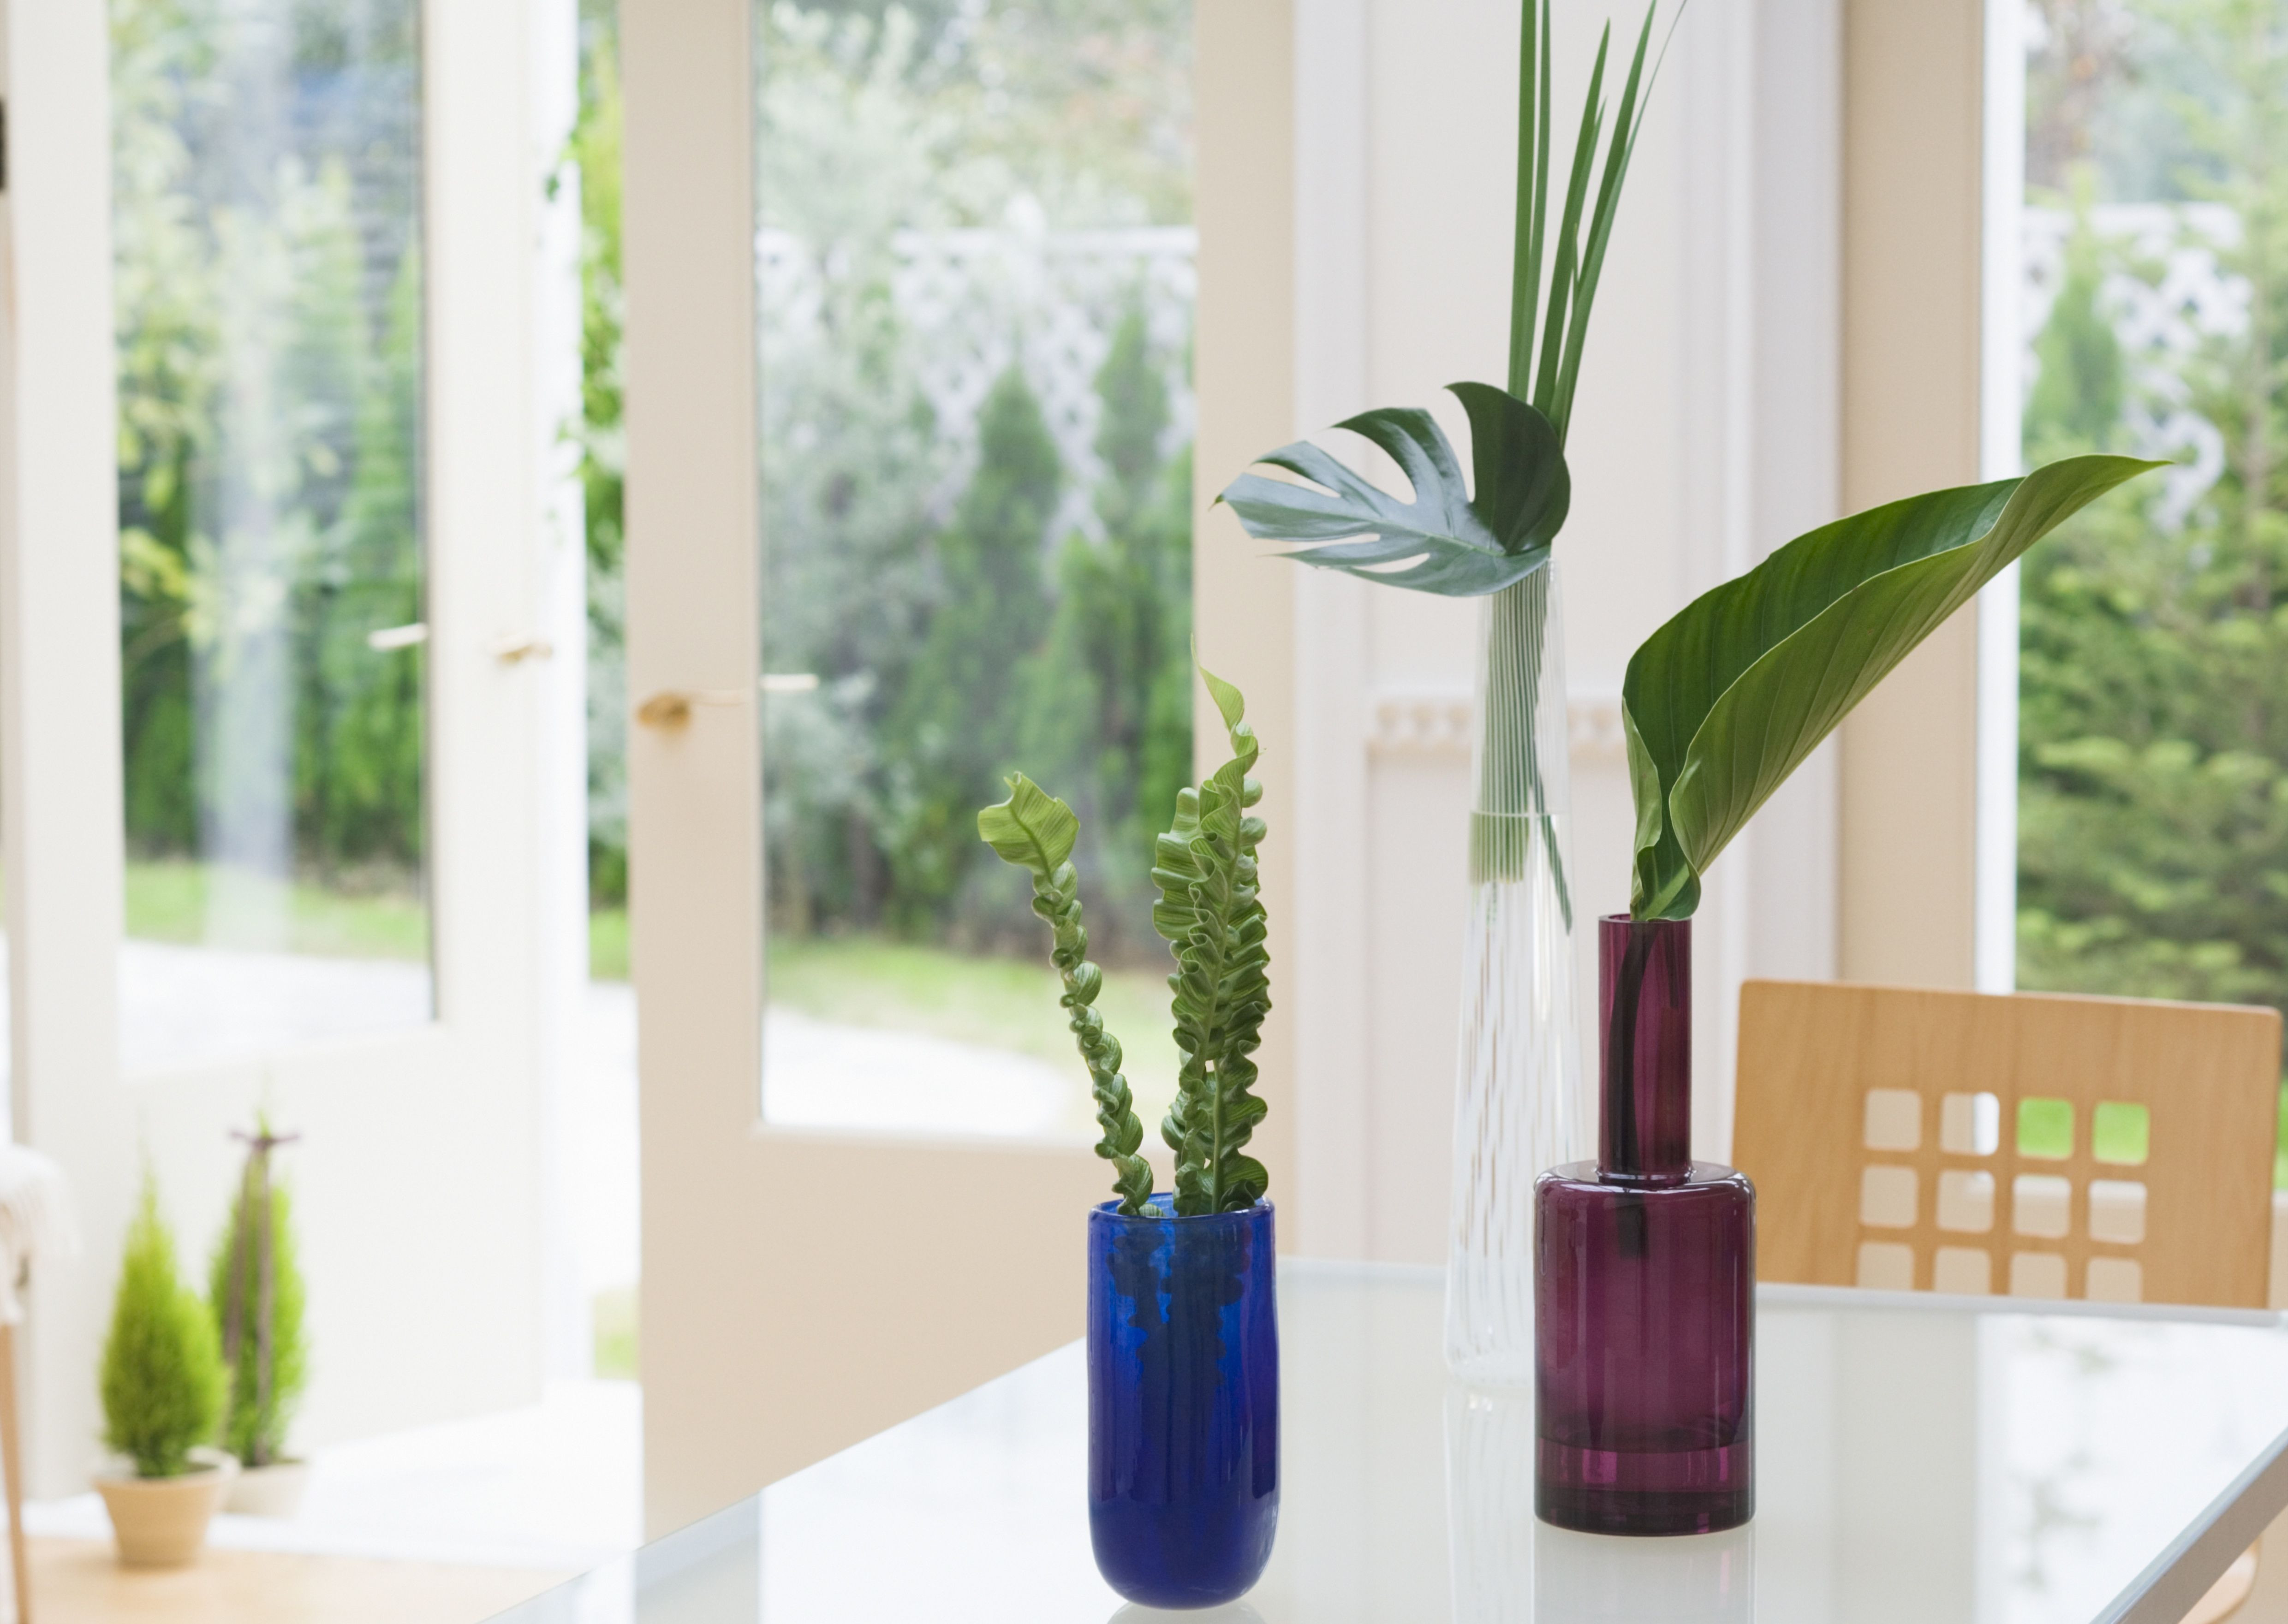 3 feet tall vases of tips for growing philodendrons as houseplants regarding room interior 77658878 5b7098a14cedfd0025521ee6